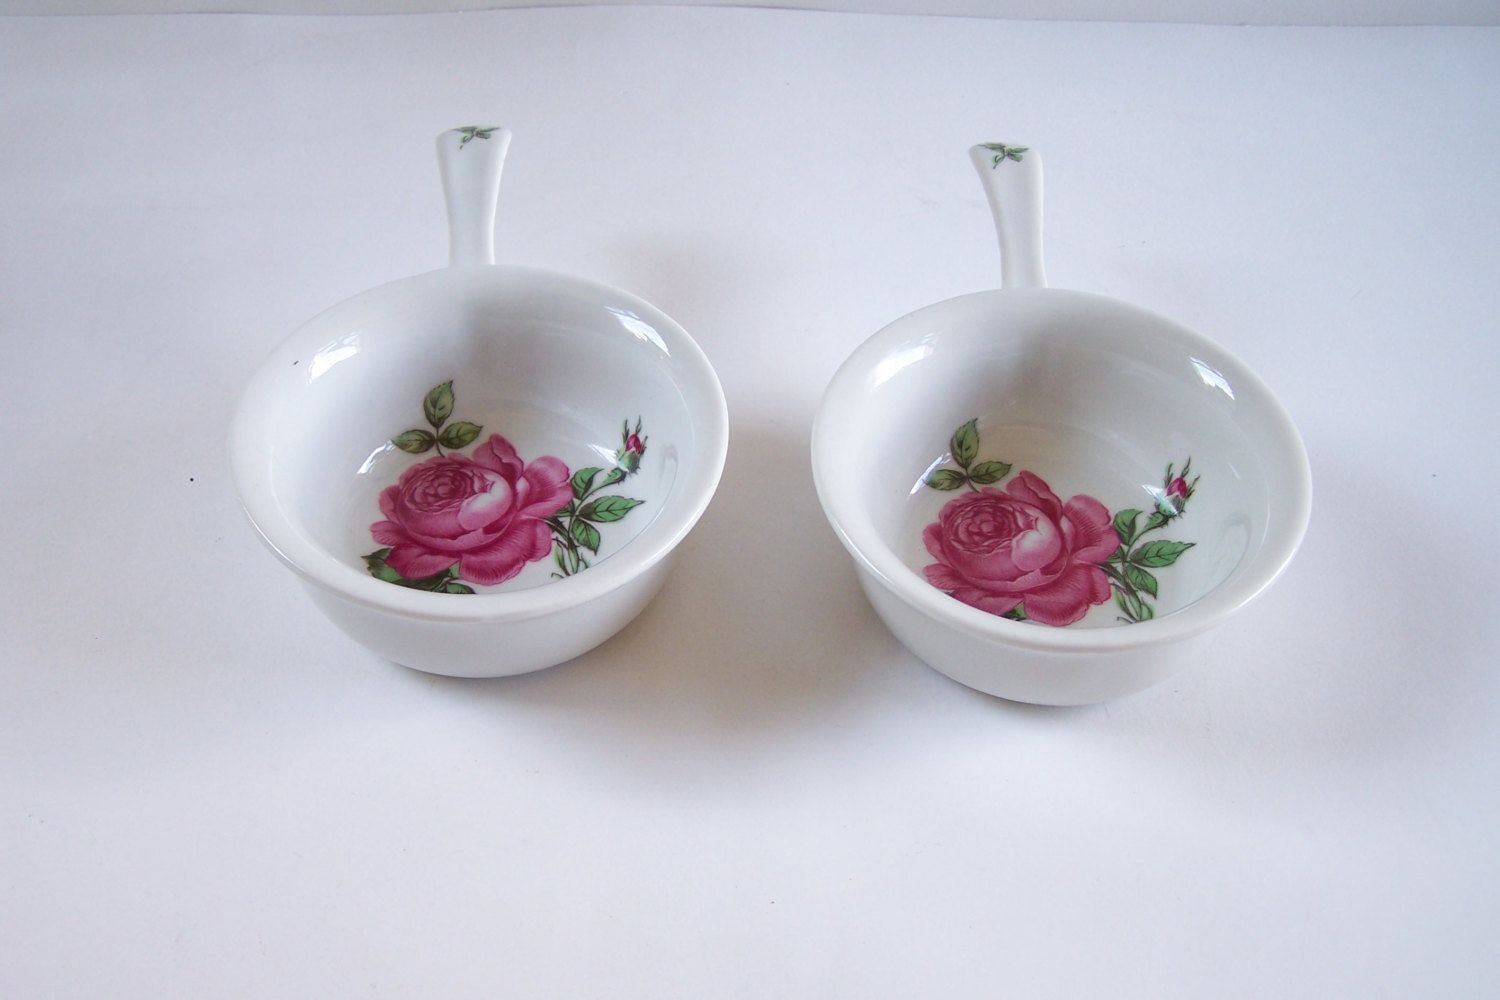 Pair of dish pink rose pattern Singer porcelain from